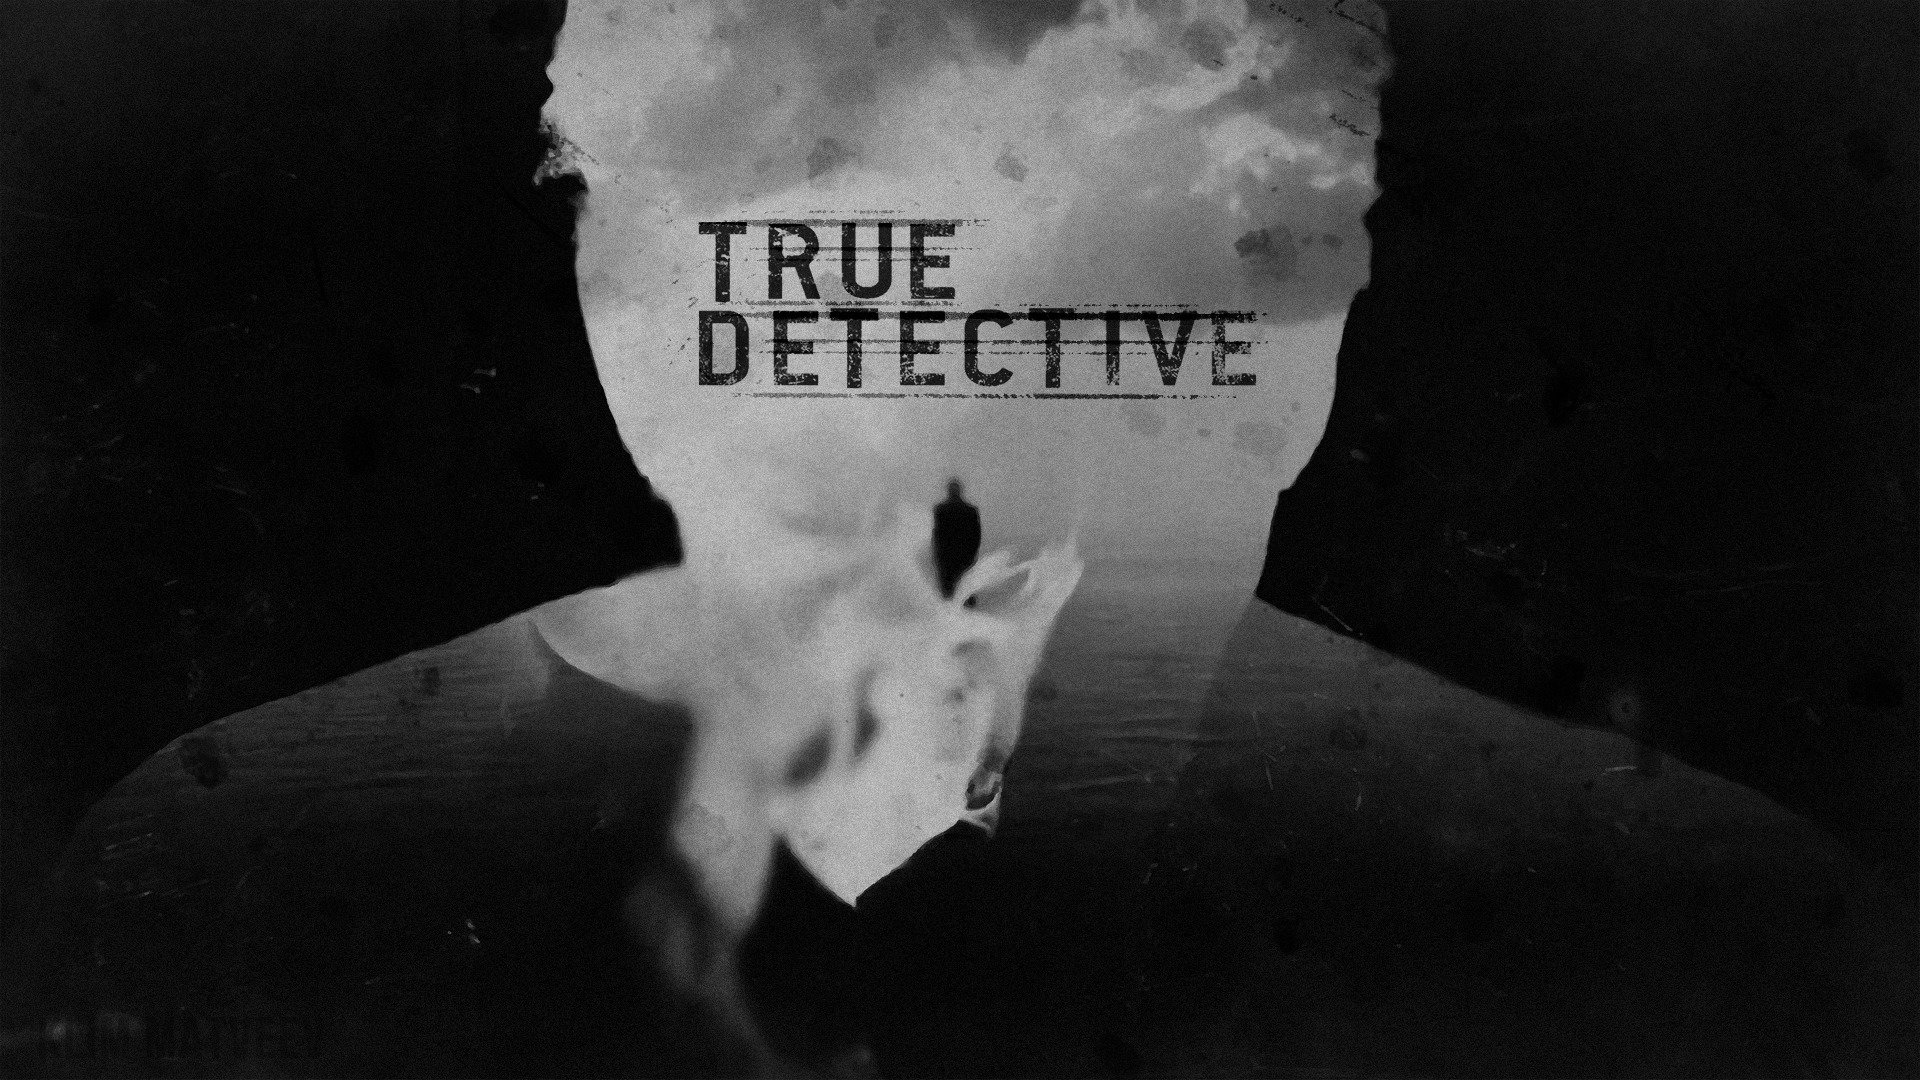 Download Full Hd 1920x1080 True Detective PC Background ID256136 For Free